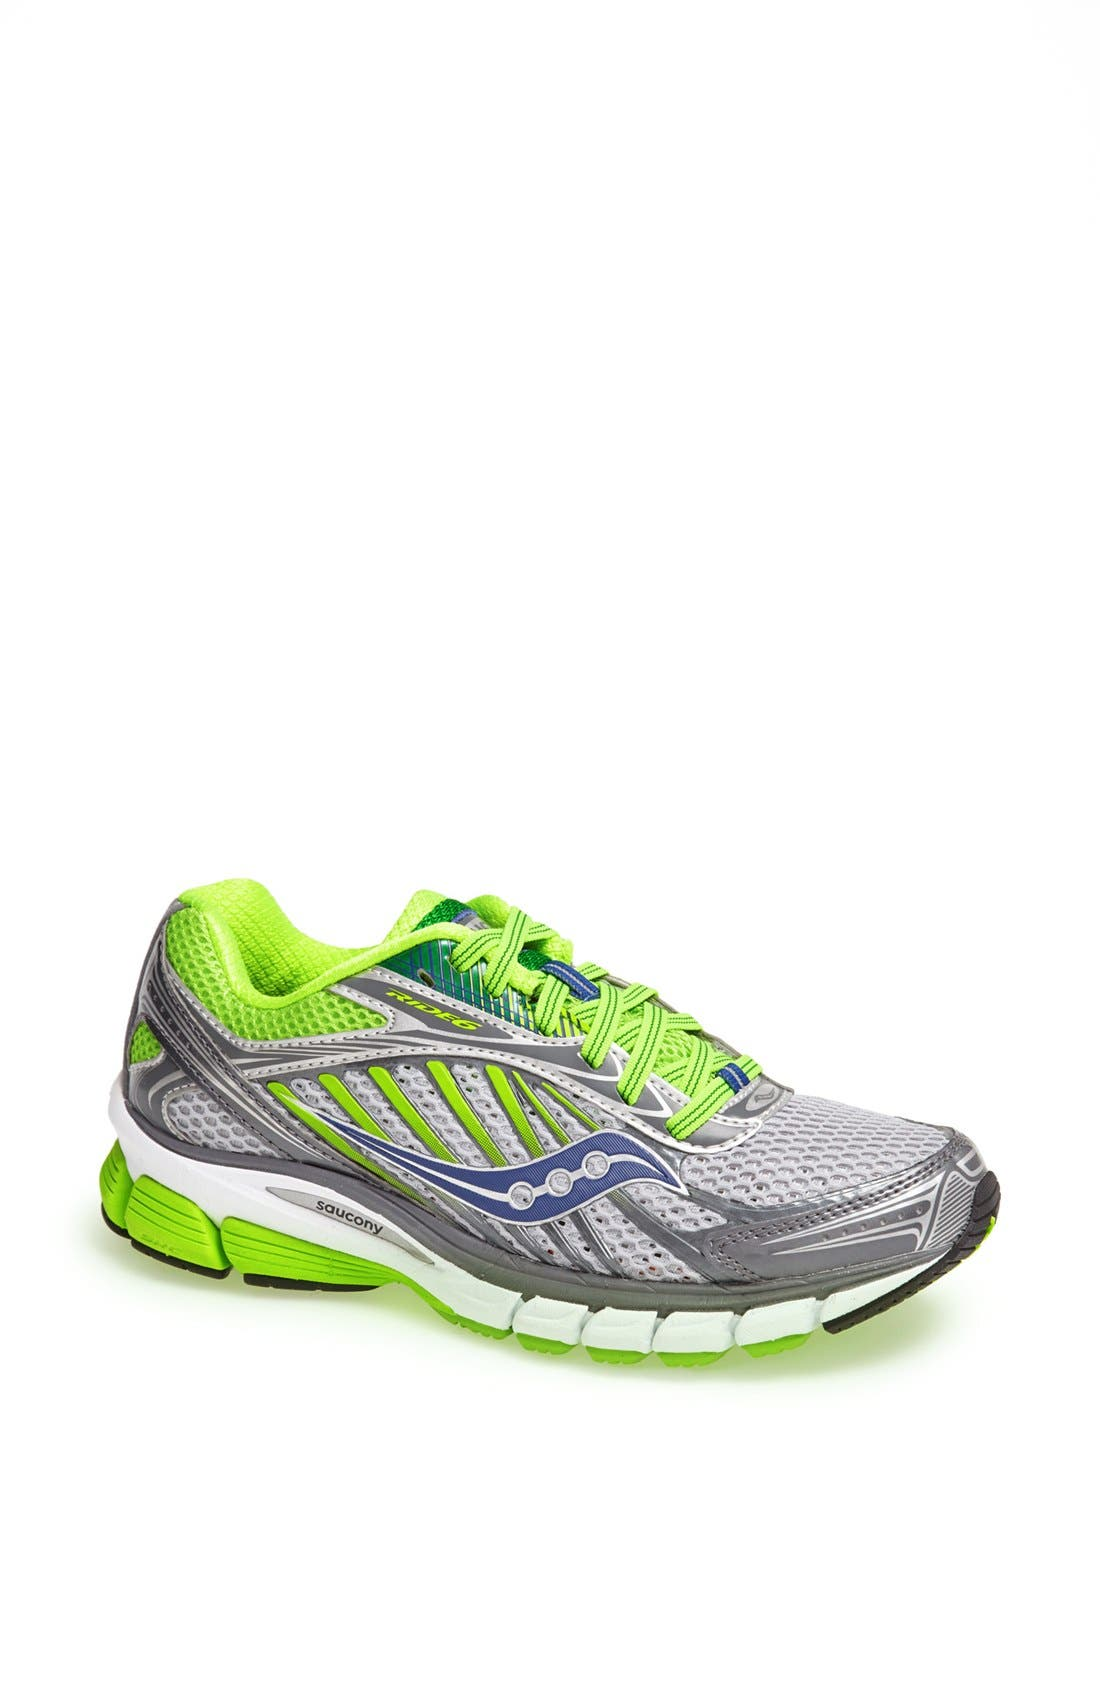 Main Image - Saucony 'Ride 6' Running Shoe (Women)